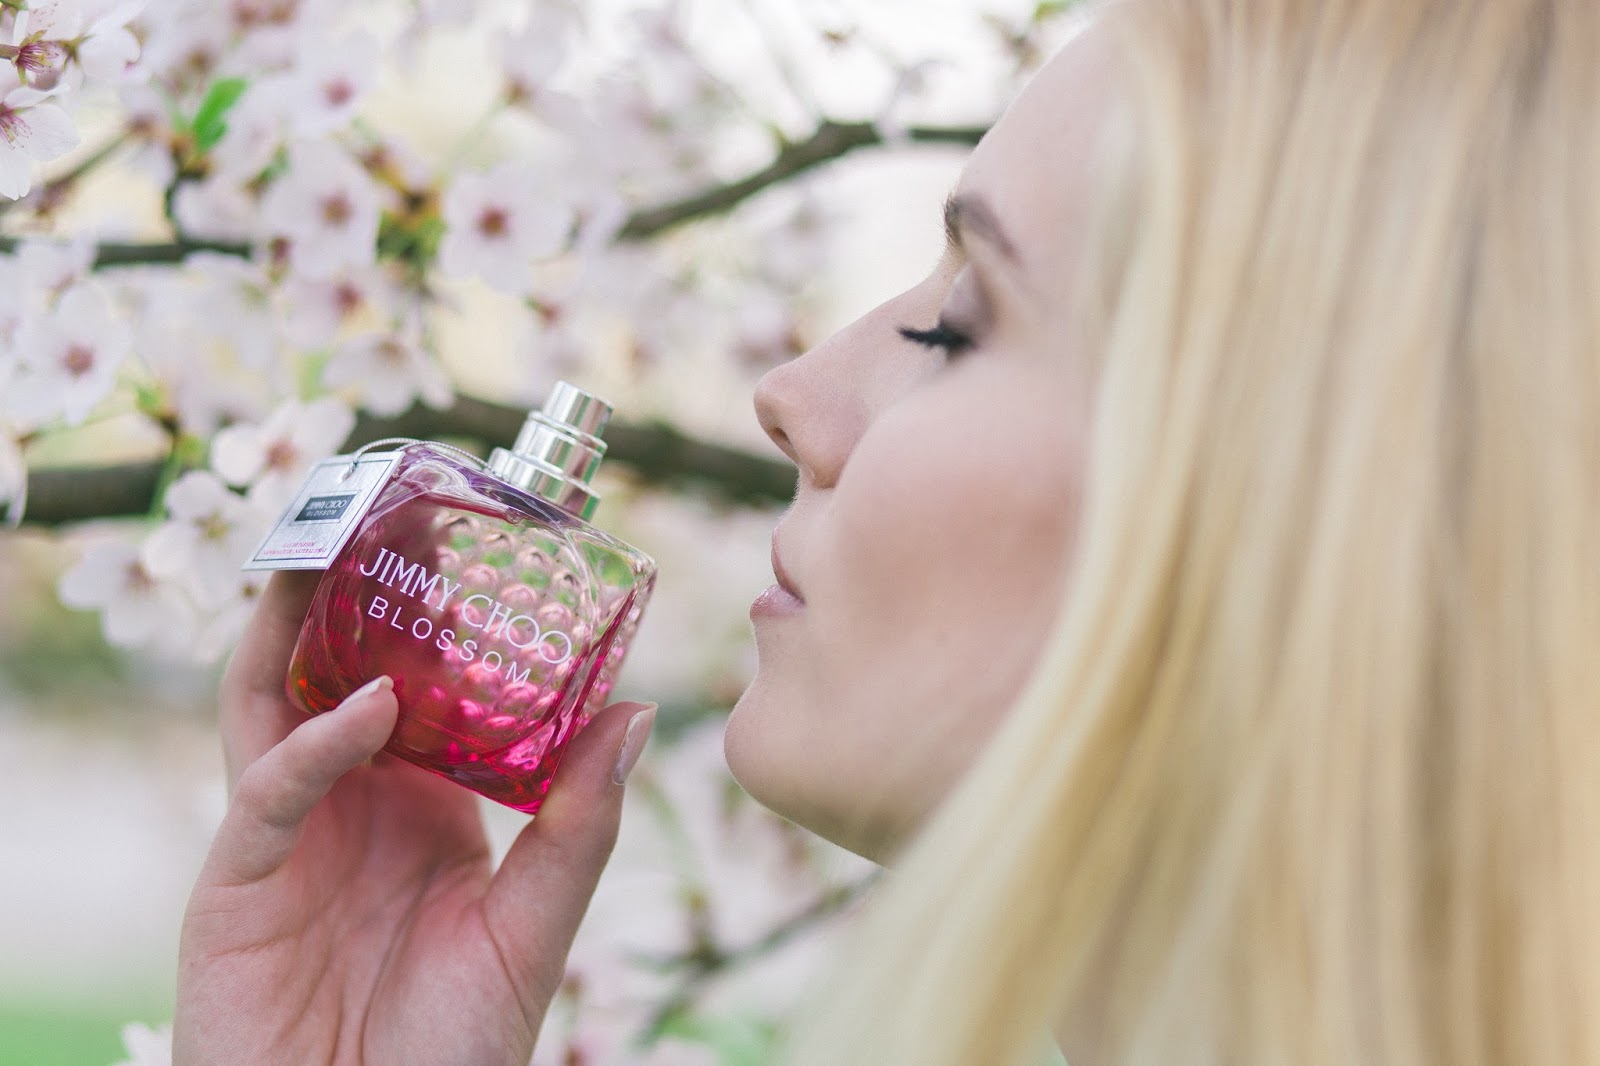 Tom Tailor X Naomi Campbell Ajdas Beauty Jimmy Choo Blossom Giveaway Ajda S Bloglovin